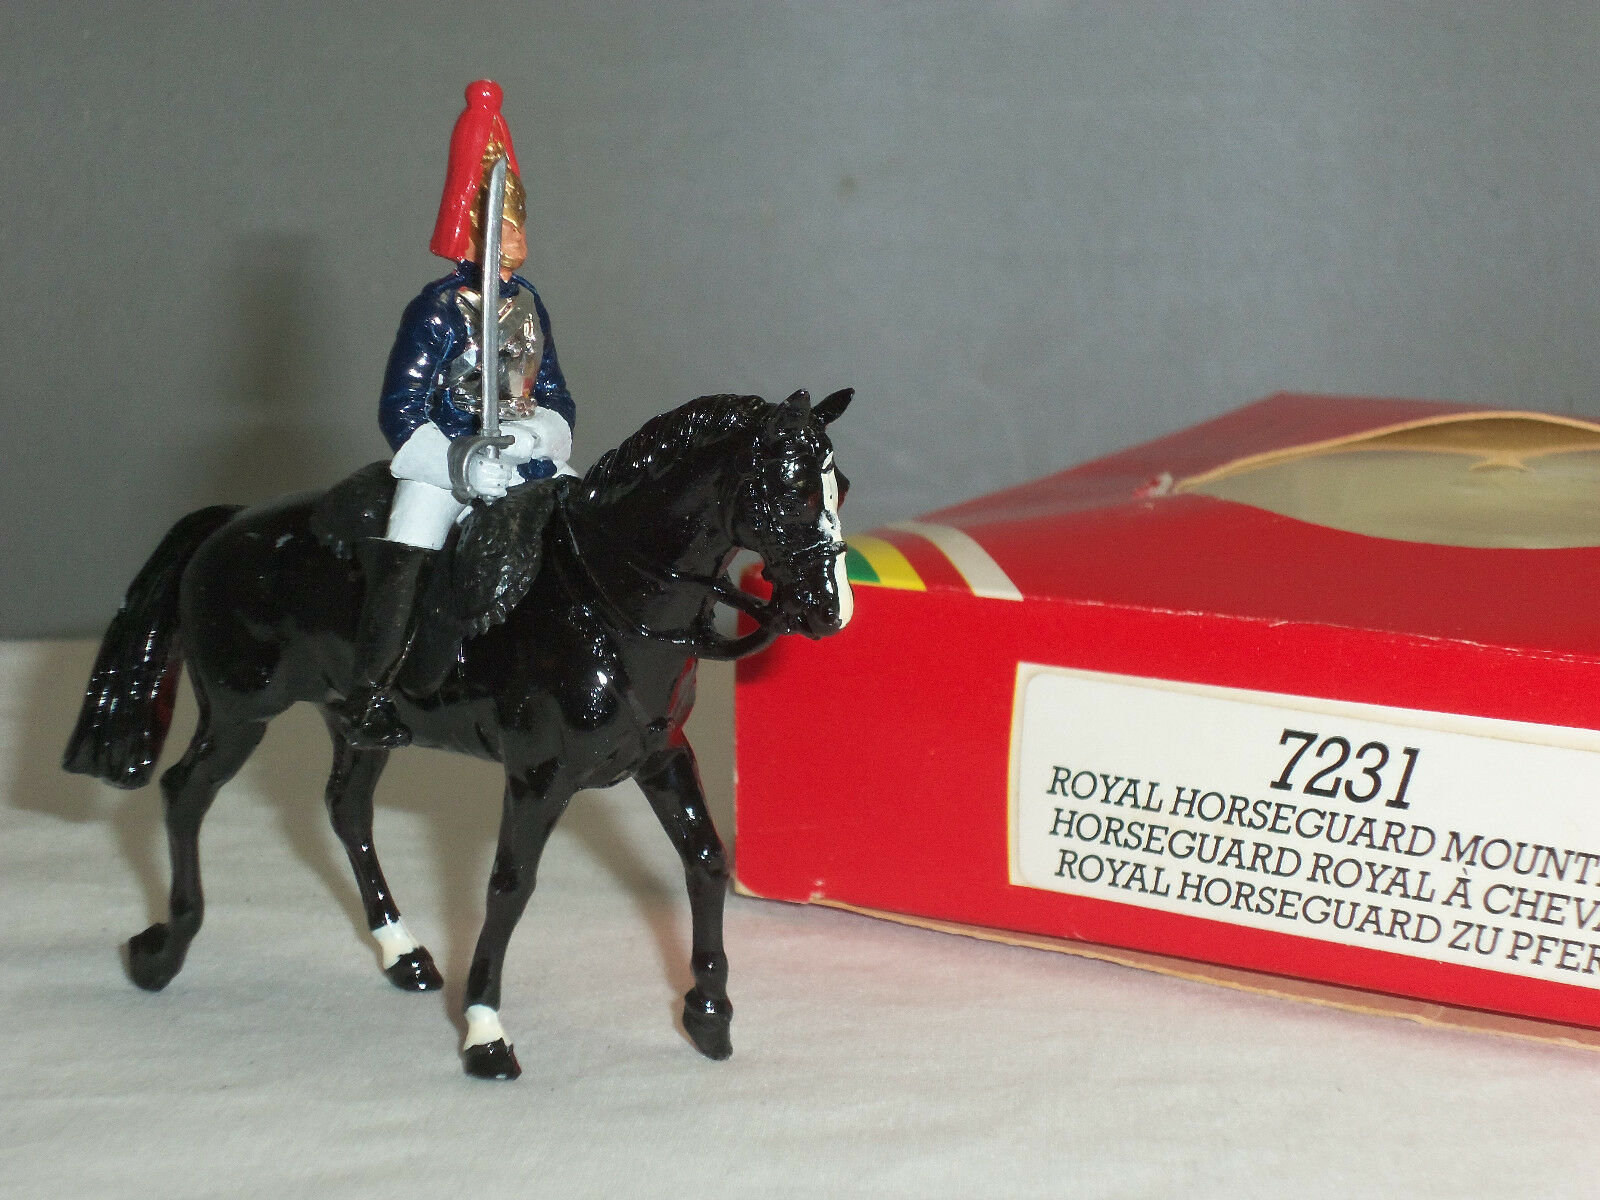 BRITAINS 7231 BRITISH ROYAL HORSEGUARD MOUNTED CEREMONIAL TOY SOLDIER FIGURE